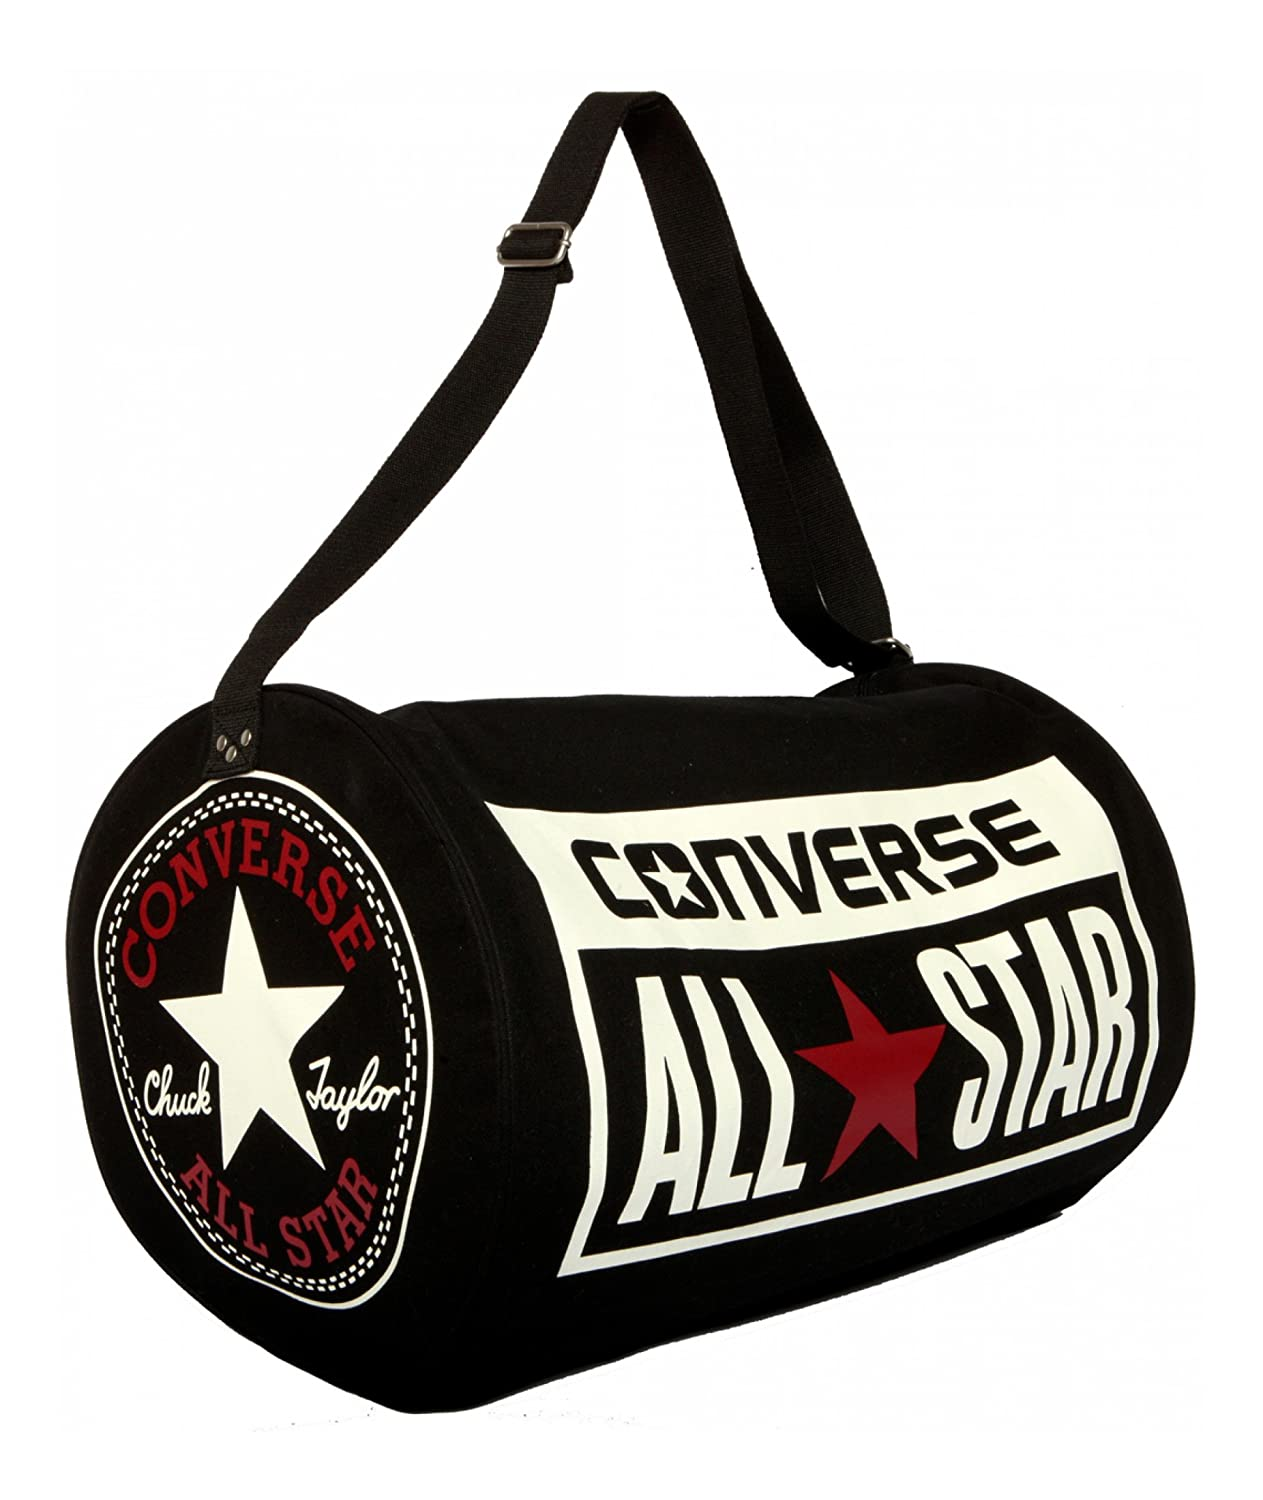 9677db342f Converse Unisex All Star Legacy Duffel Sports Bag - Black